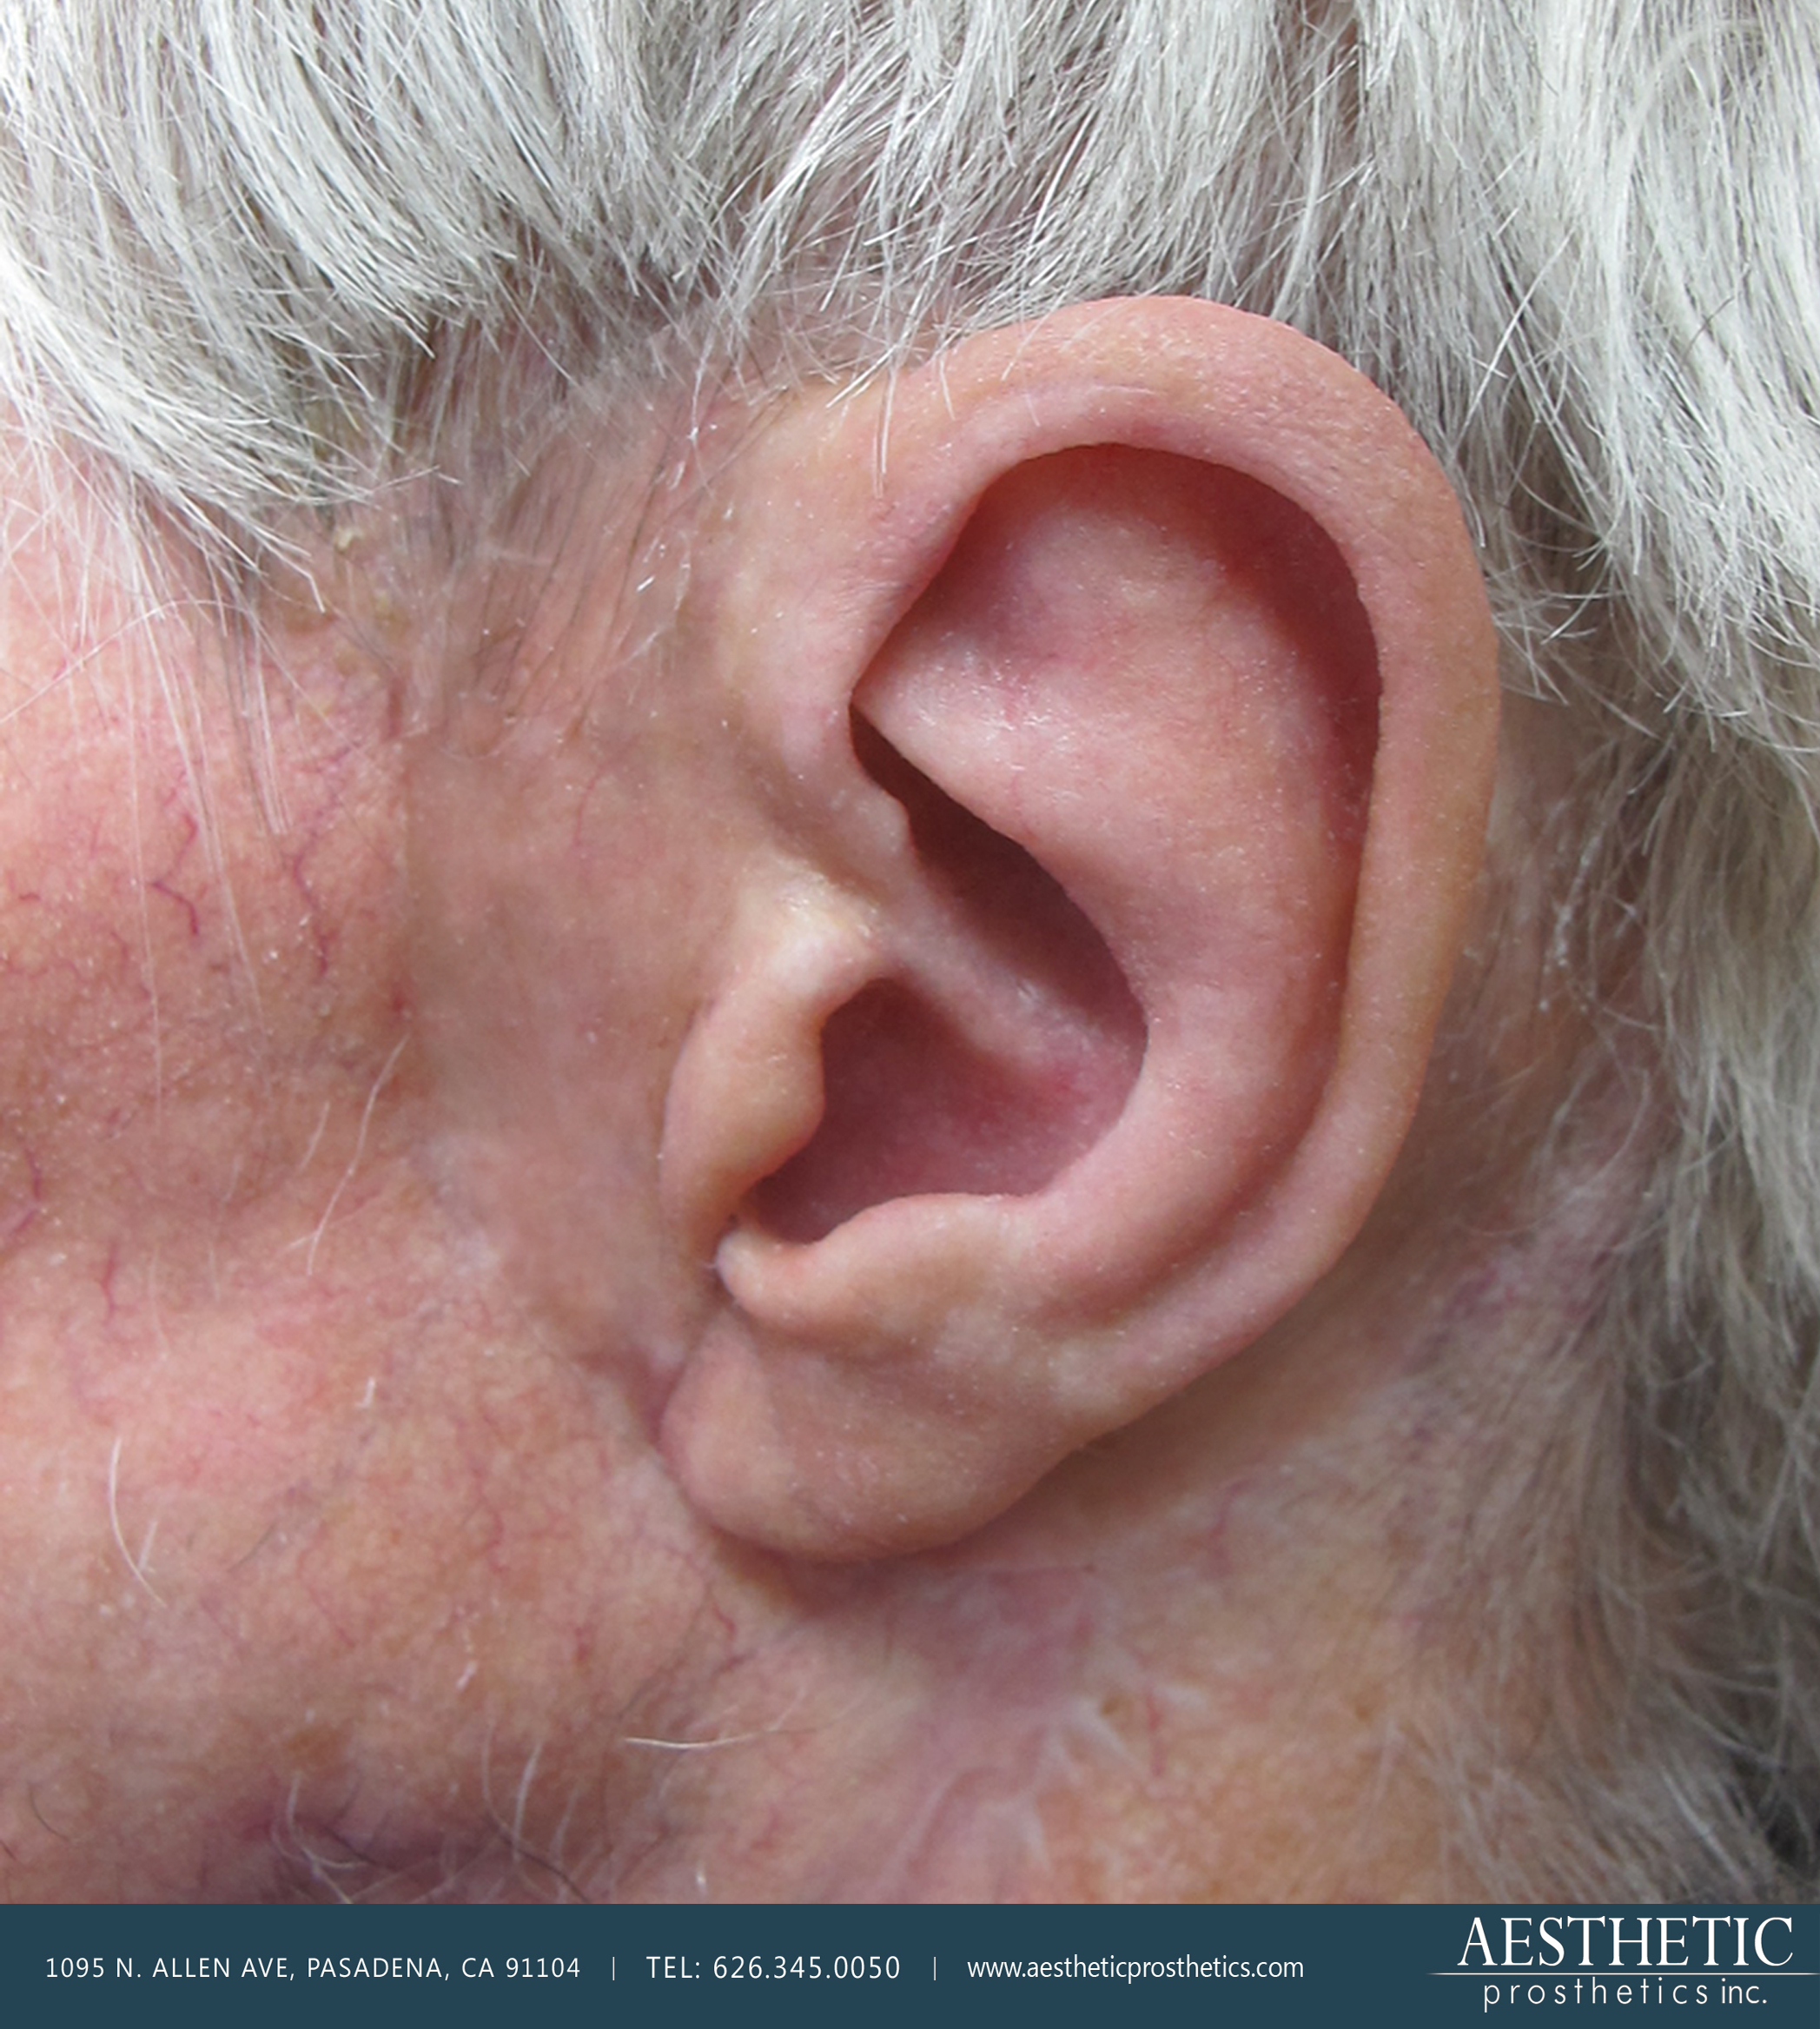 highly realistic prosthetic left ear with surrounding tissue and hair of elderly Caucasian man made by Aesthetic Prosthetics in Pasadena, ca southern california los angeles